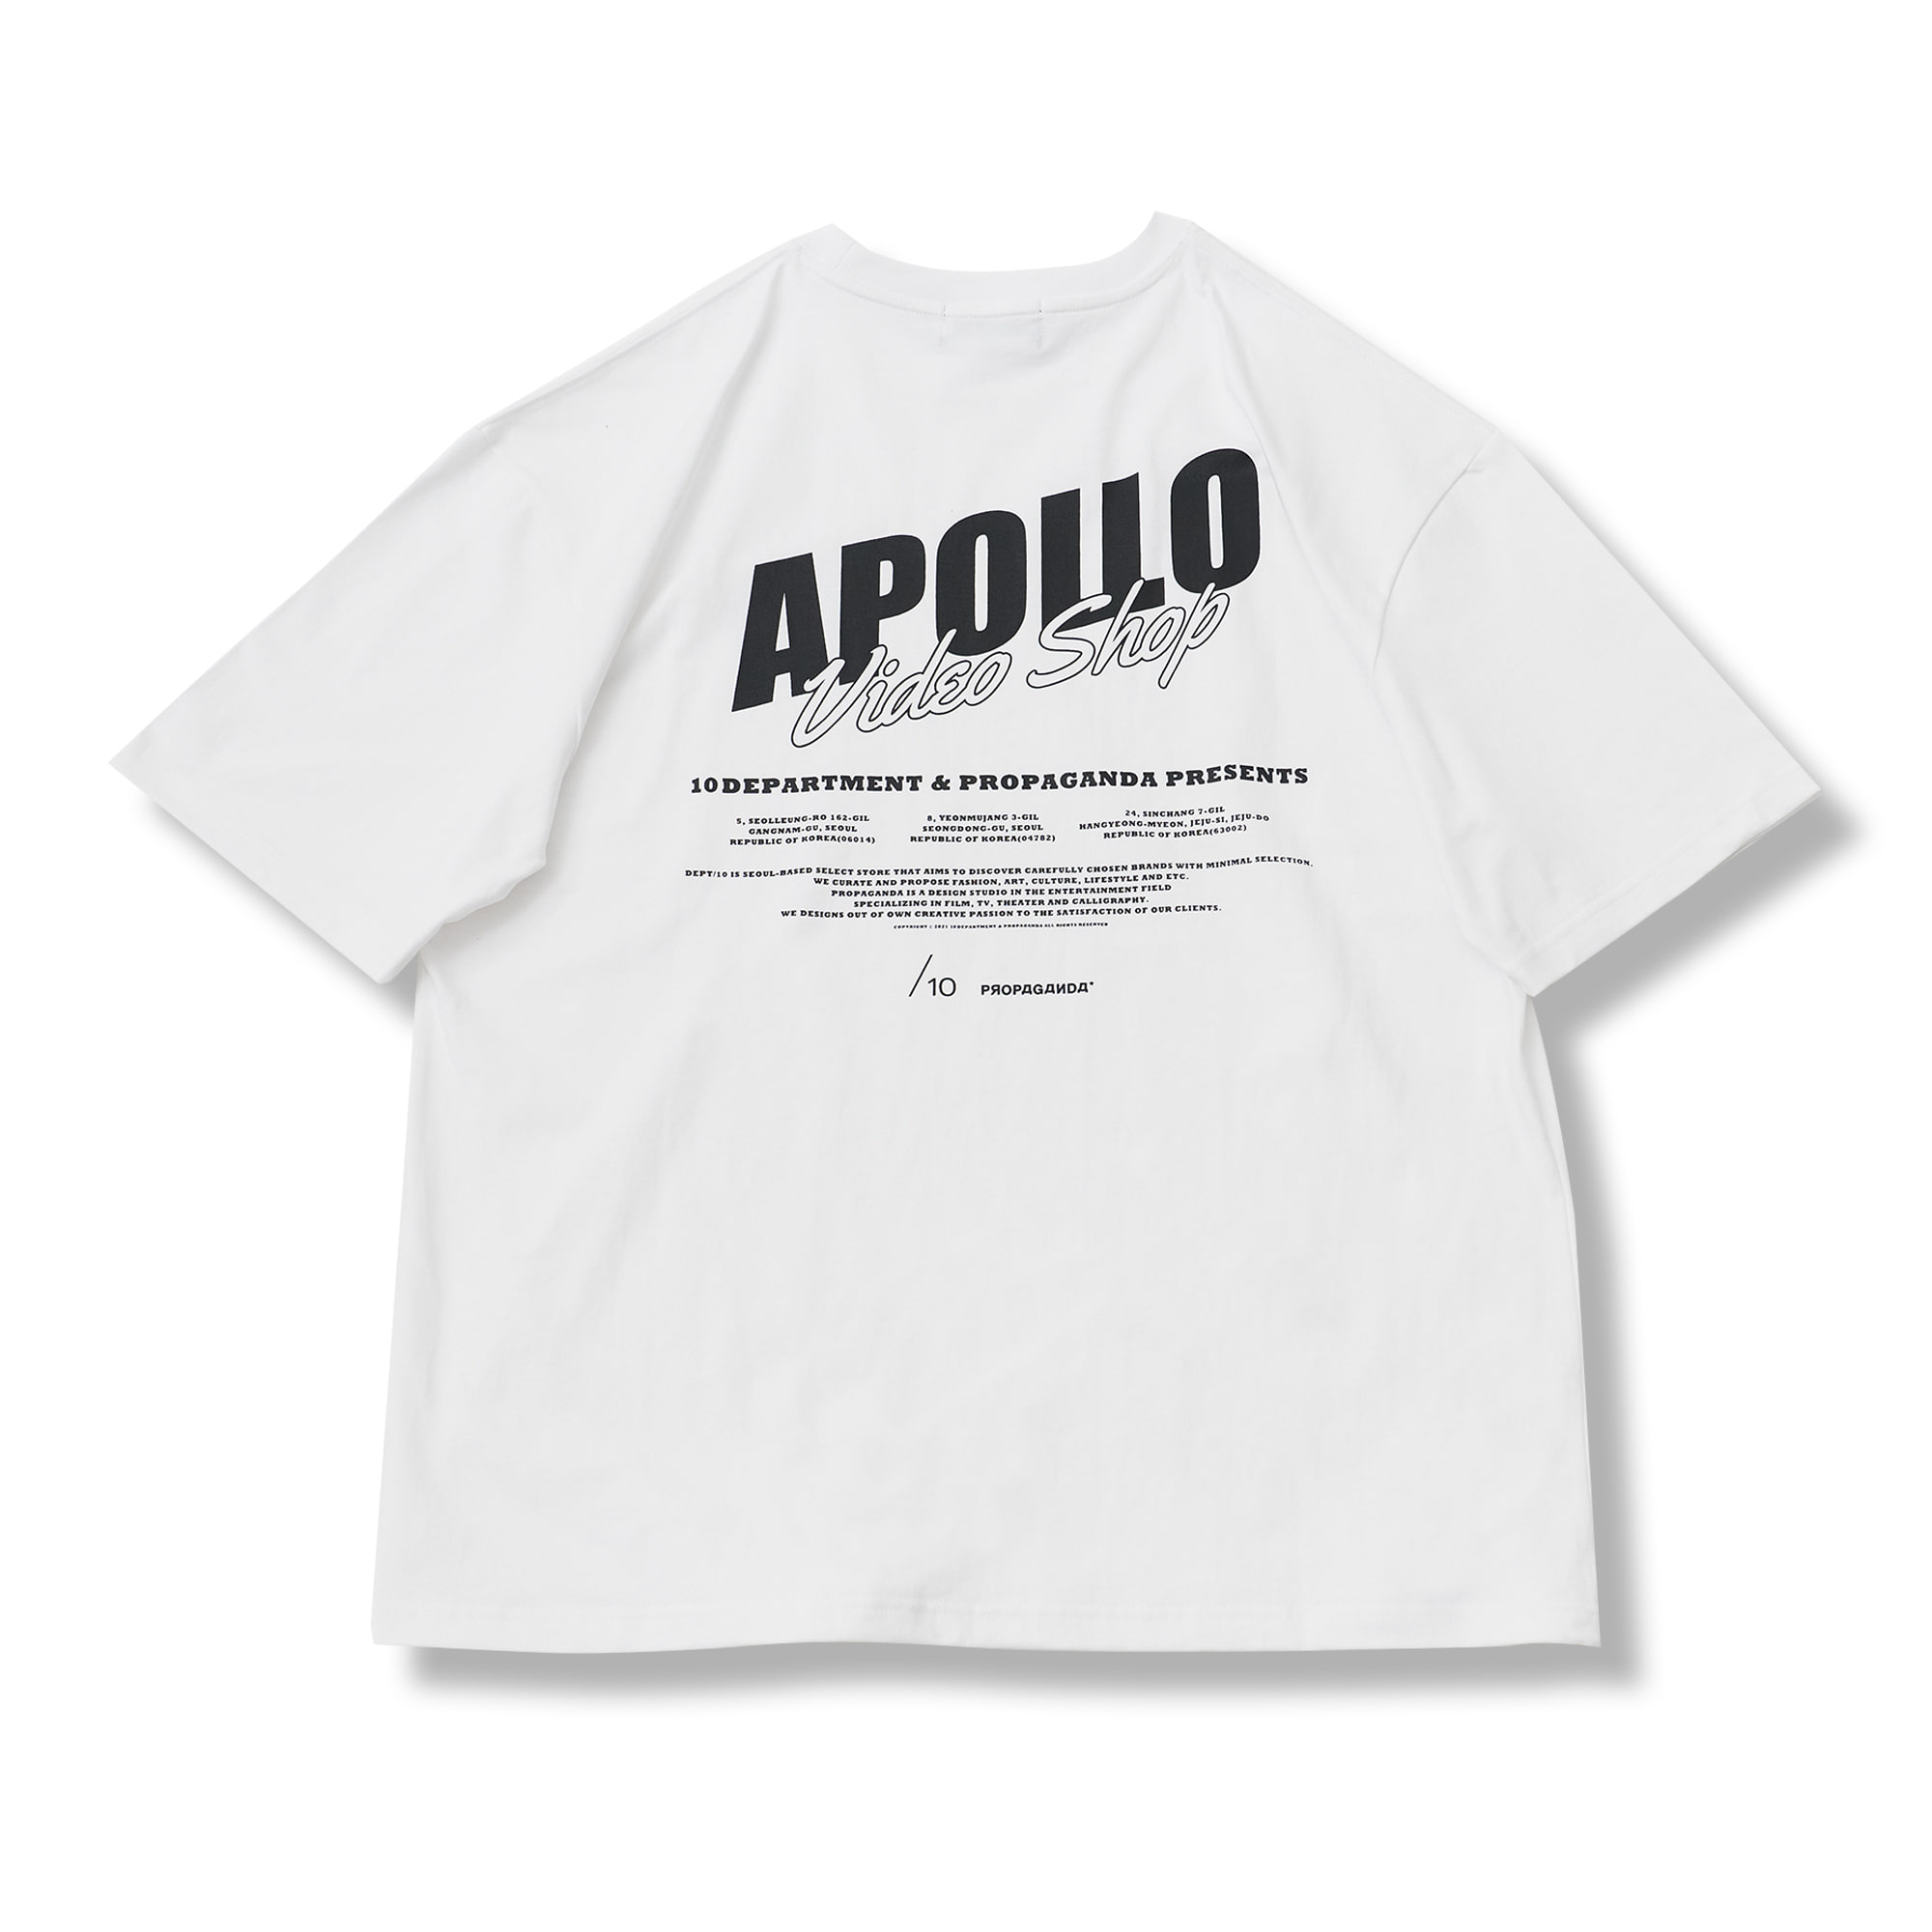 APOLLO VIDEO SHOP(PROPAGANDA x 십화점)